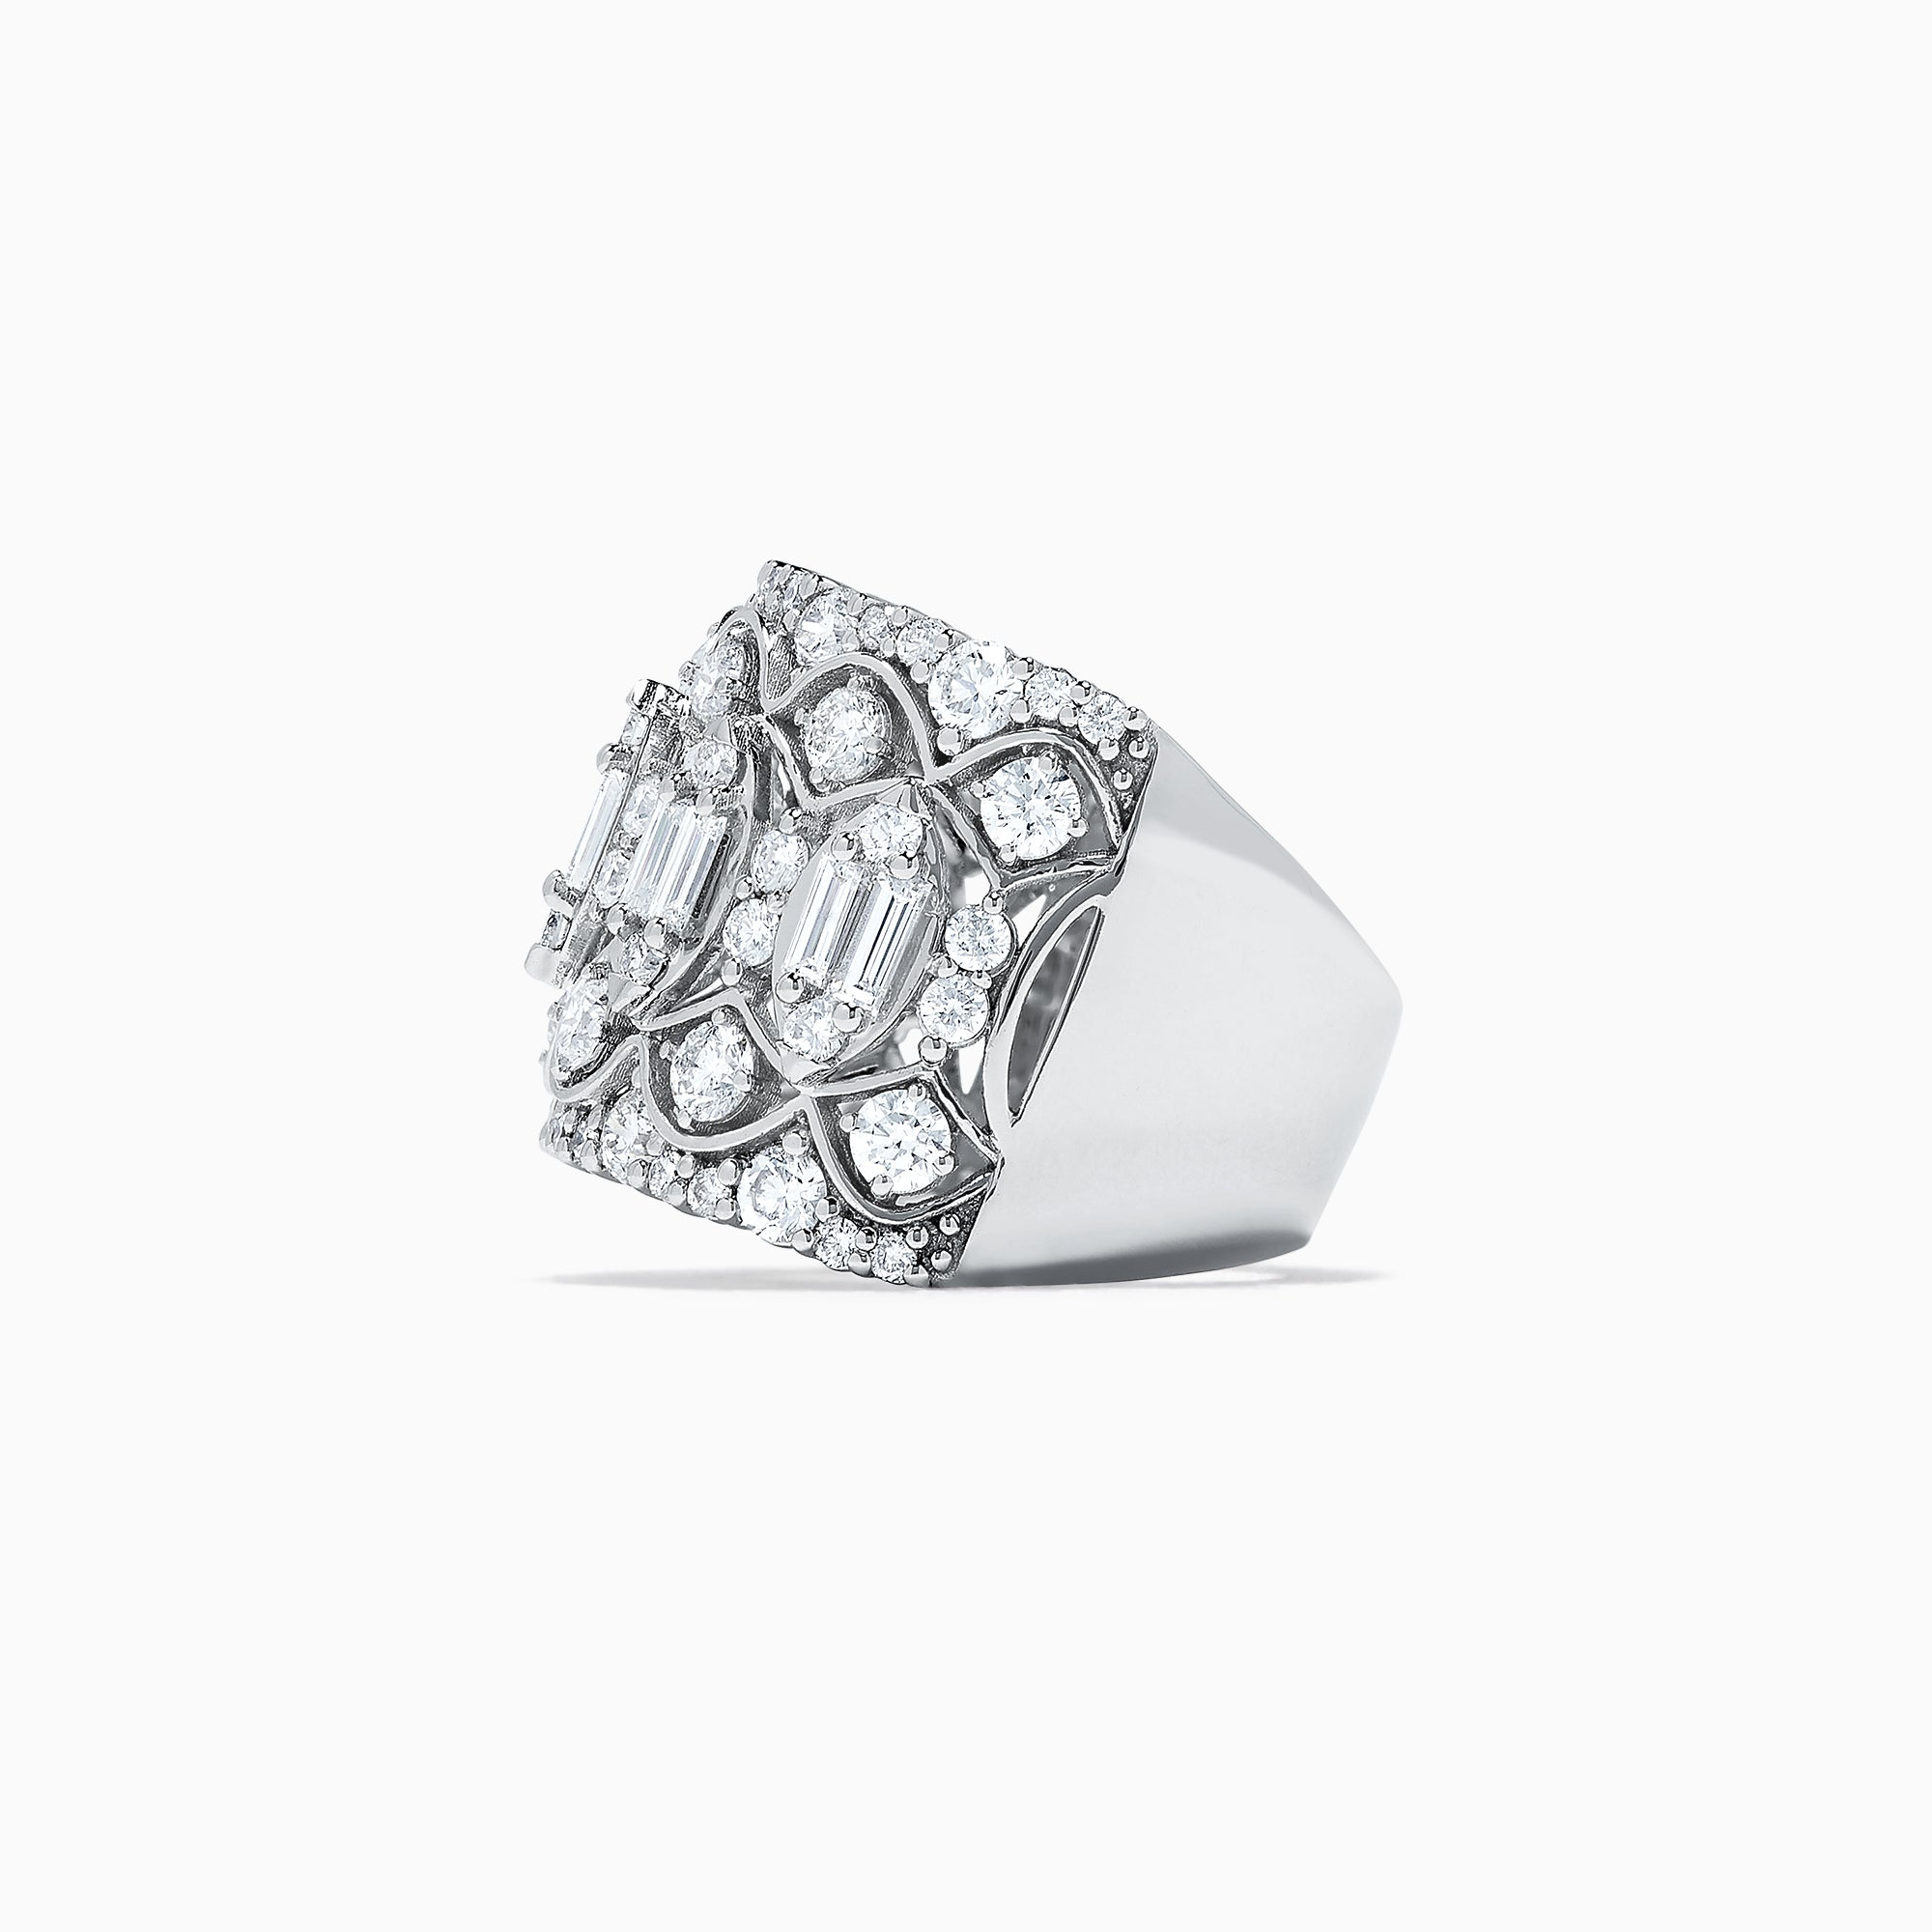 Effy Pave Classica 14K White Gold Diamond Ring, 2.53 TCW